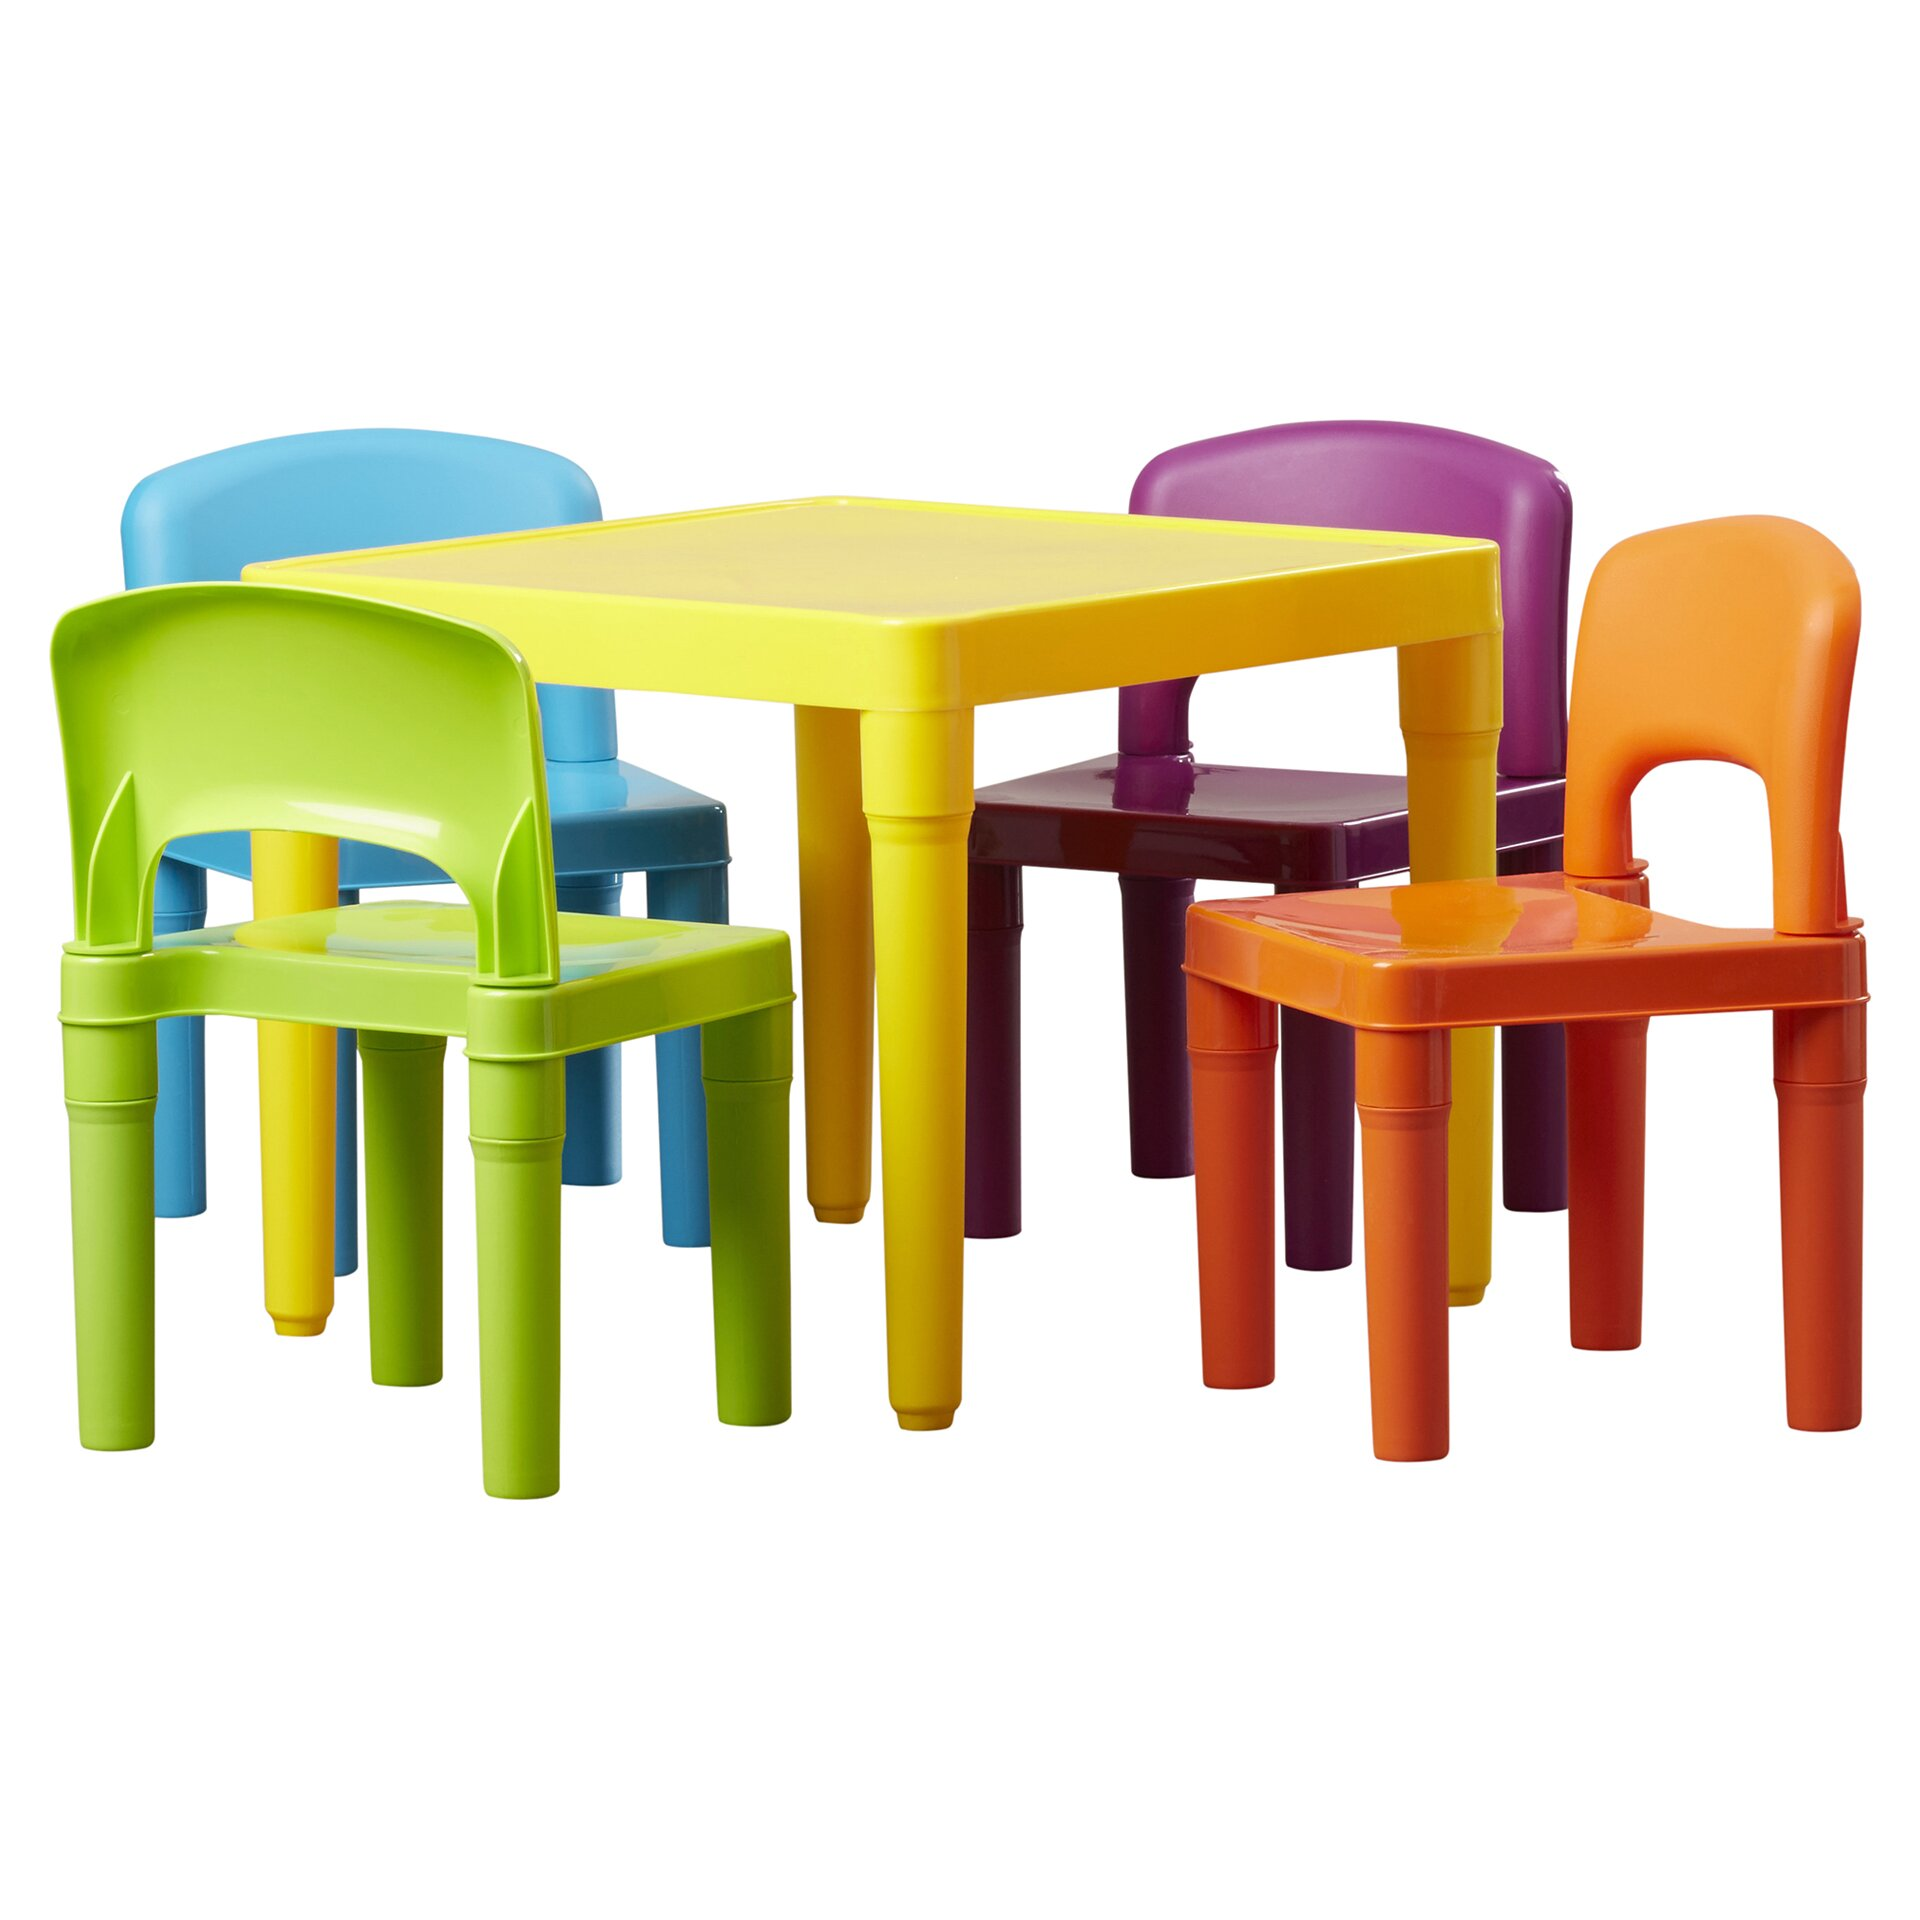 Tot tutors kids 5 piece plastic table and chair set for Table and chair set